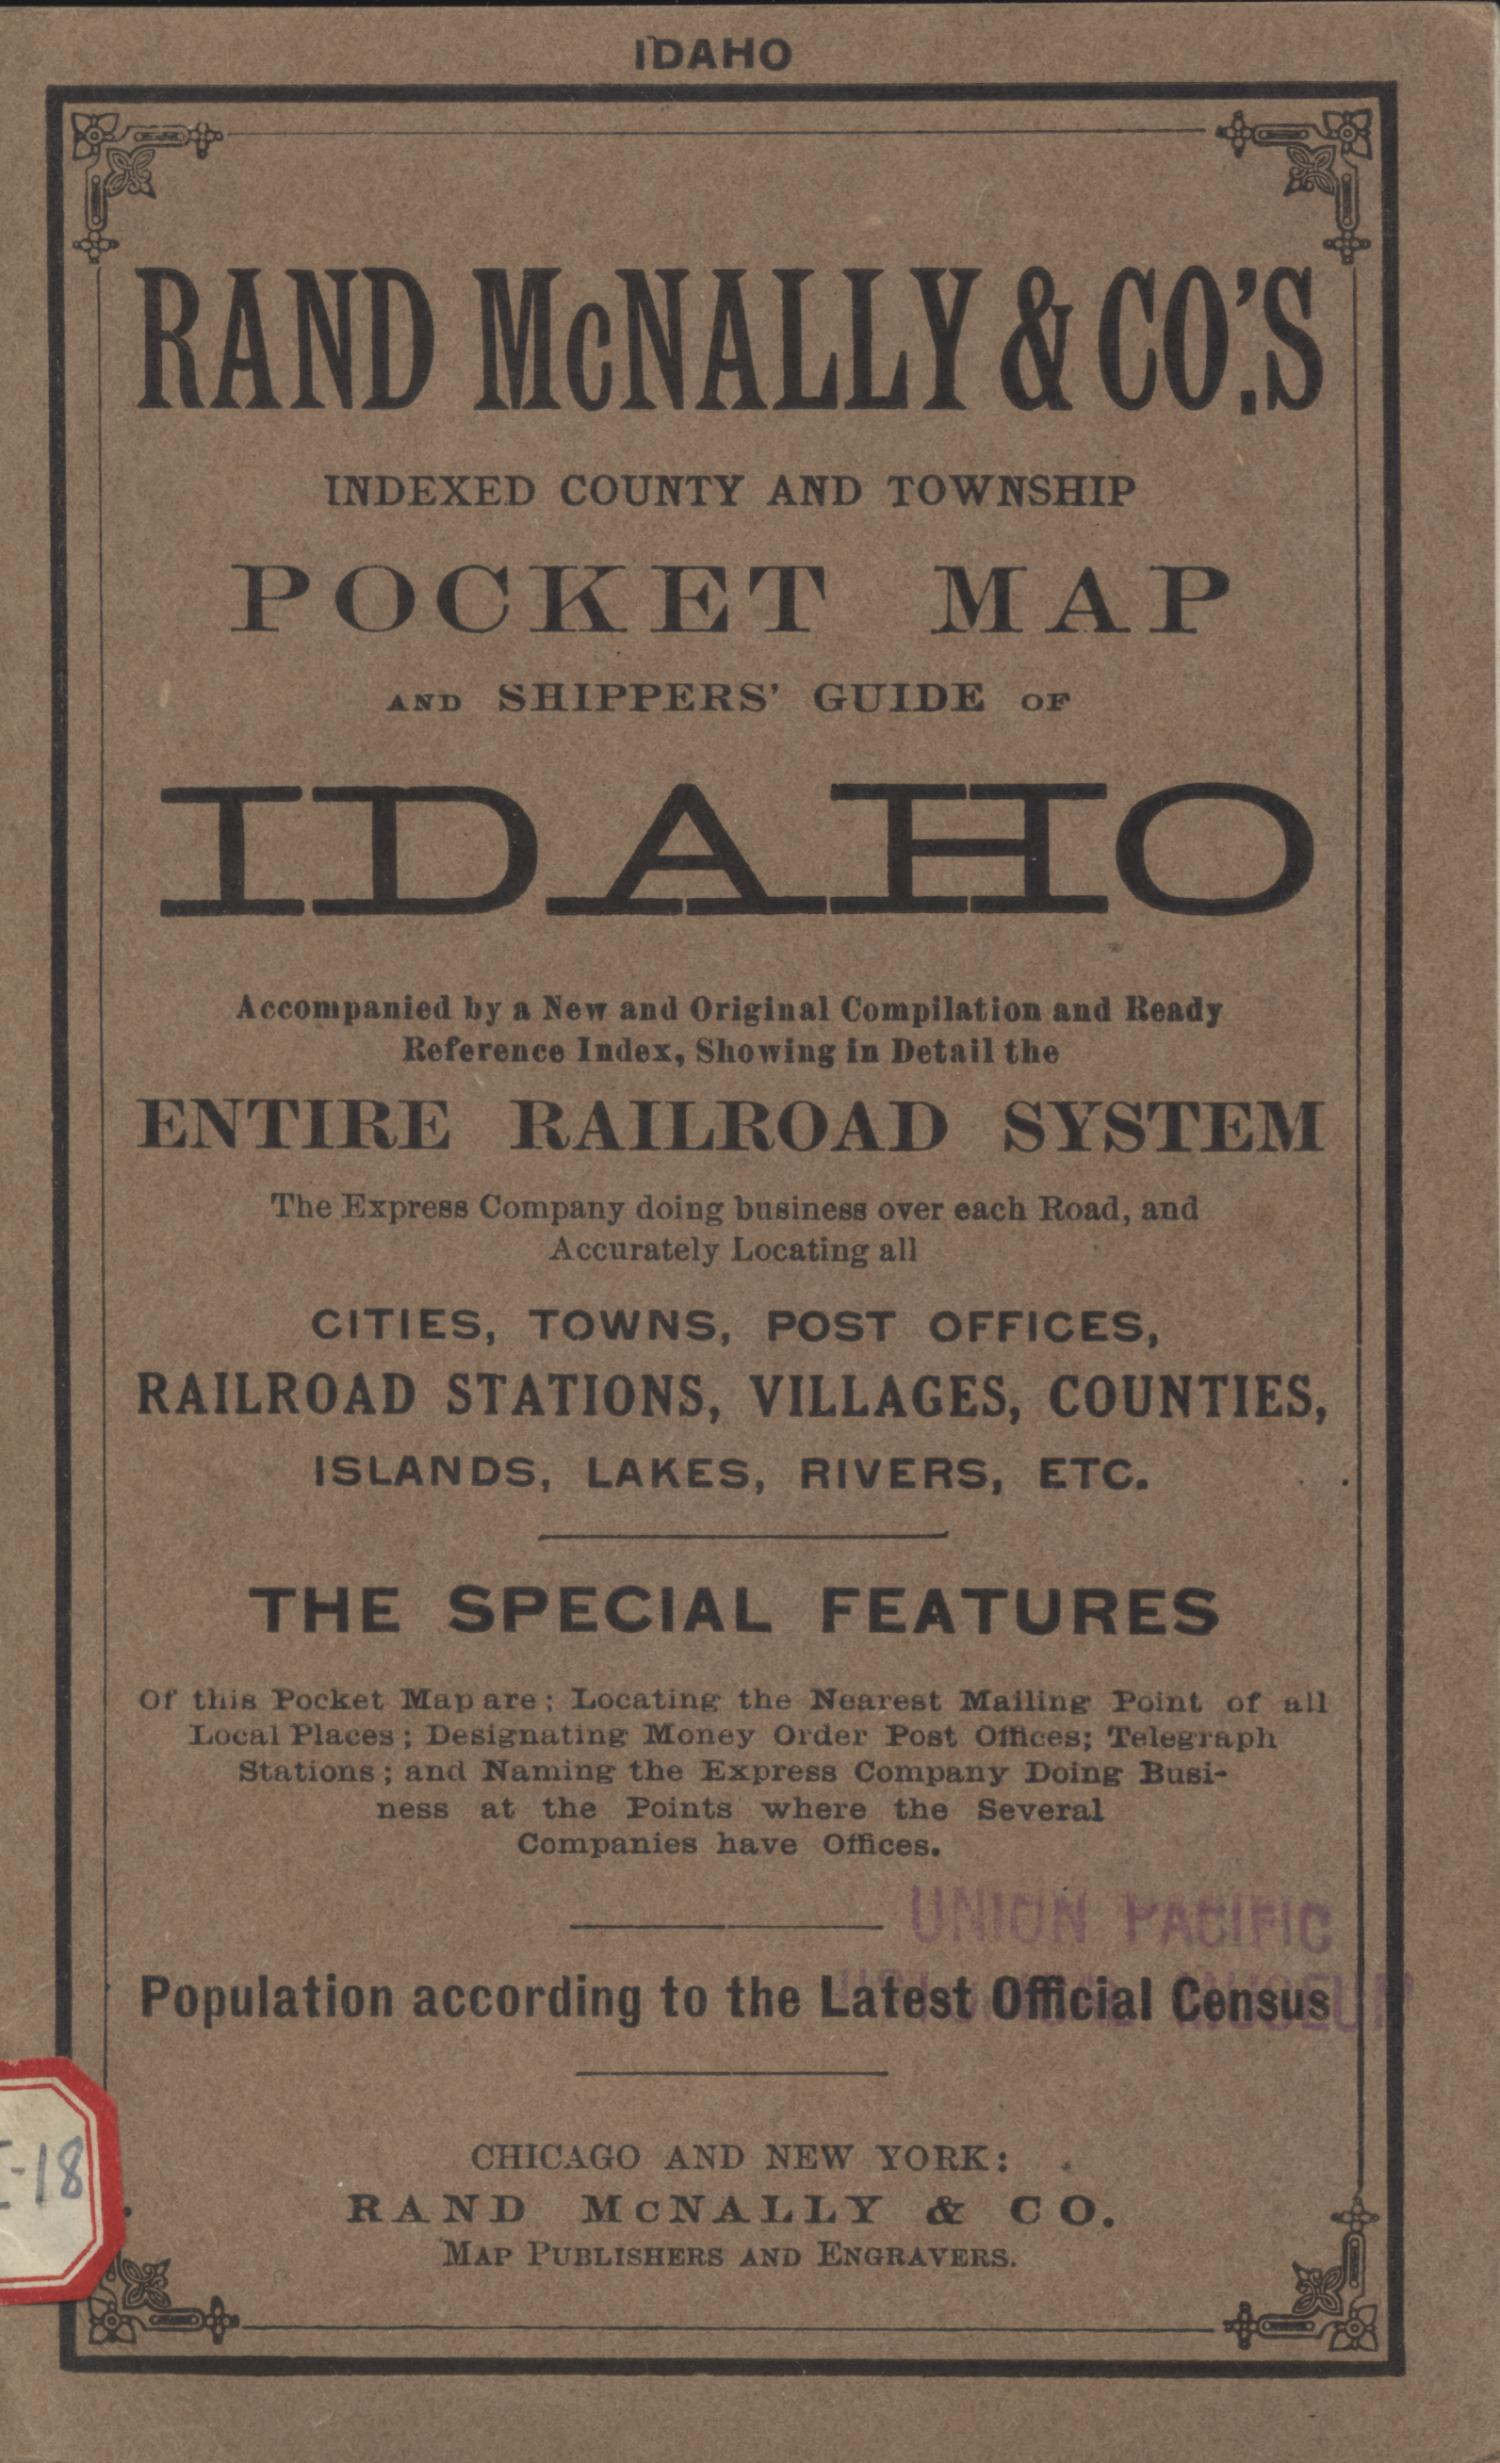 Idaho [ Accompanying Text]., Explanation and supporting information related to map that shows early twentieth century Idaho counties, Native American reservations, township grid, railroads, proposed canal system, lava beds, cities, and towns.,